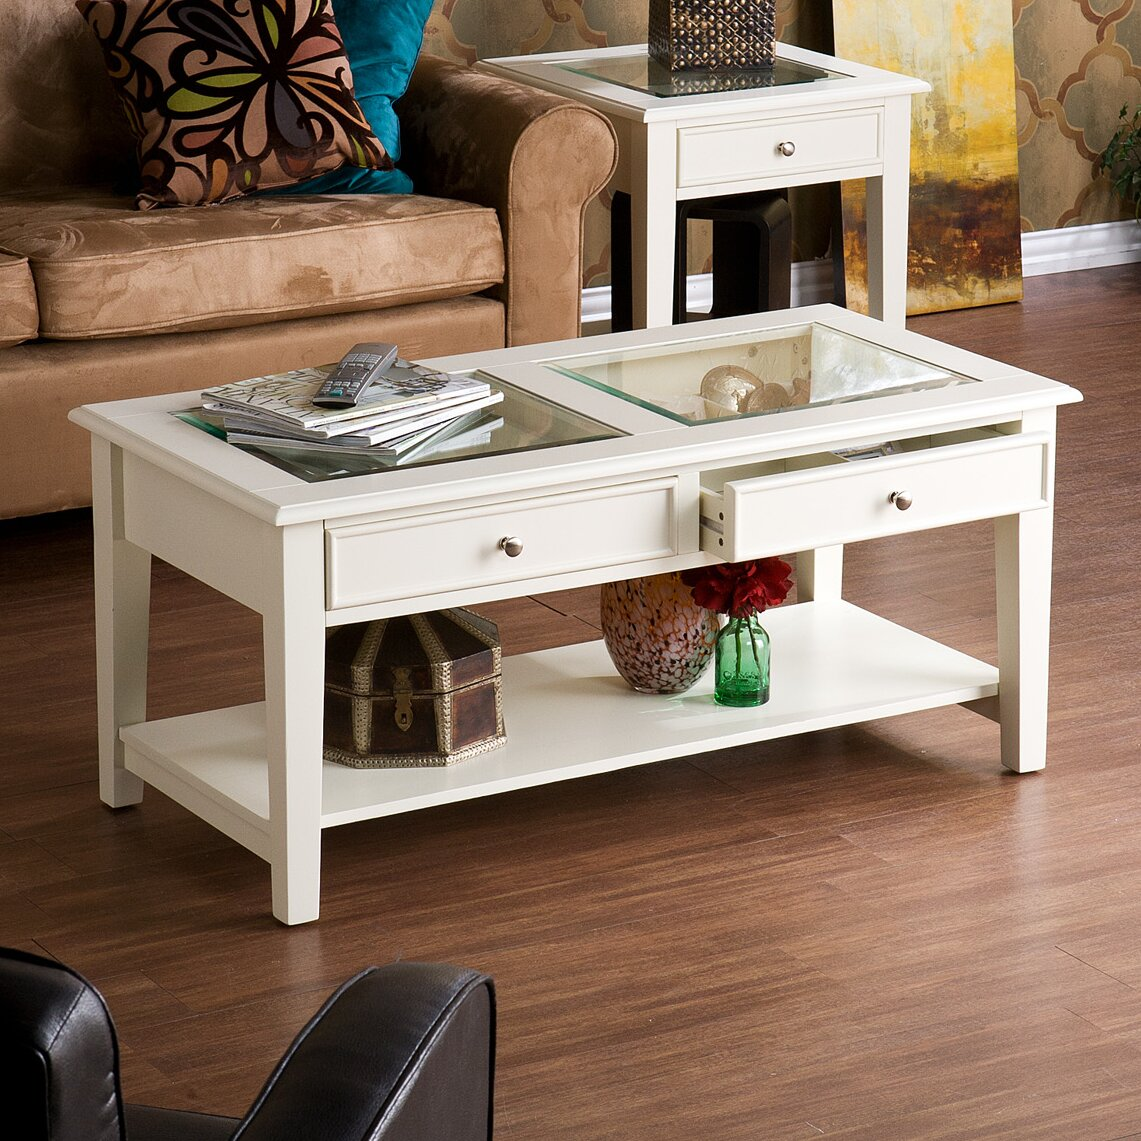 Coffee Table With Drawers: Alcott Hill Amber Oak 2 Drawer Coffee Table & Reviews